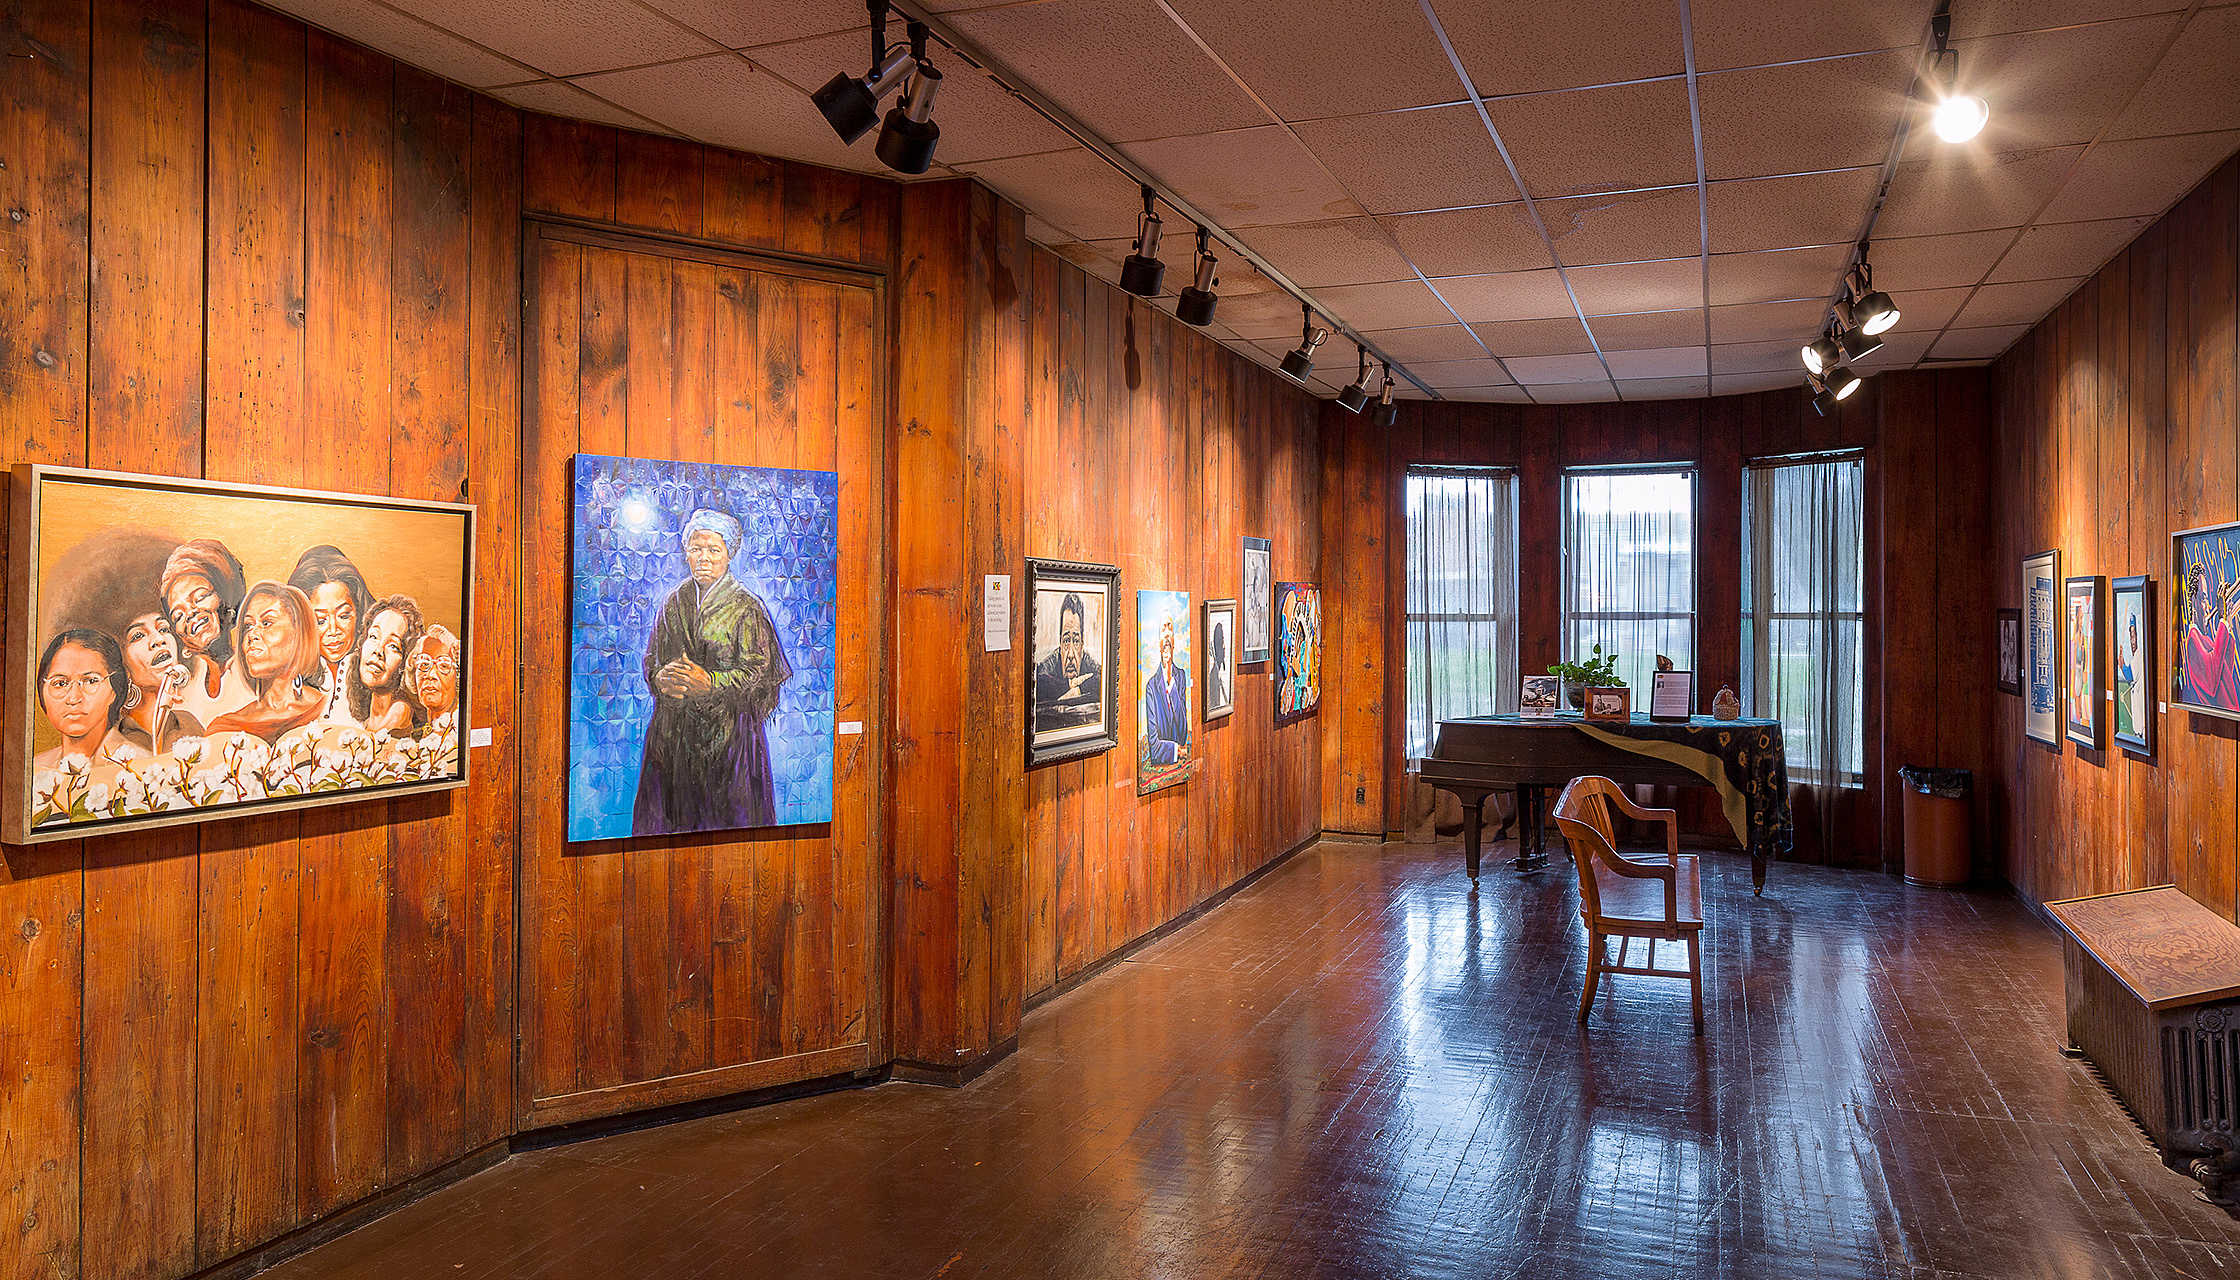 Featured image: A view of the Dr. Margaret S. Burroughs gallery, which will benefit from Raise It Up! (December 5 & 6), a fundraiser driven by the Chicago Printers Guild in support of the South Side Community Art Center. Photo by Jacob Hand for the national trust for historic preservation.